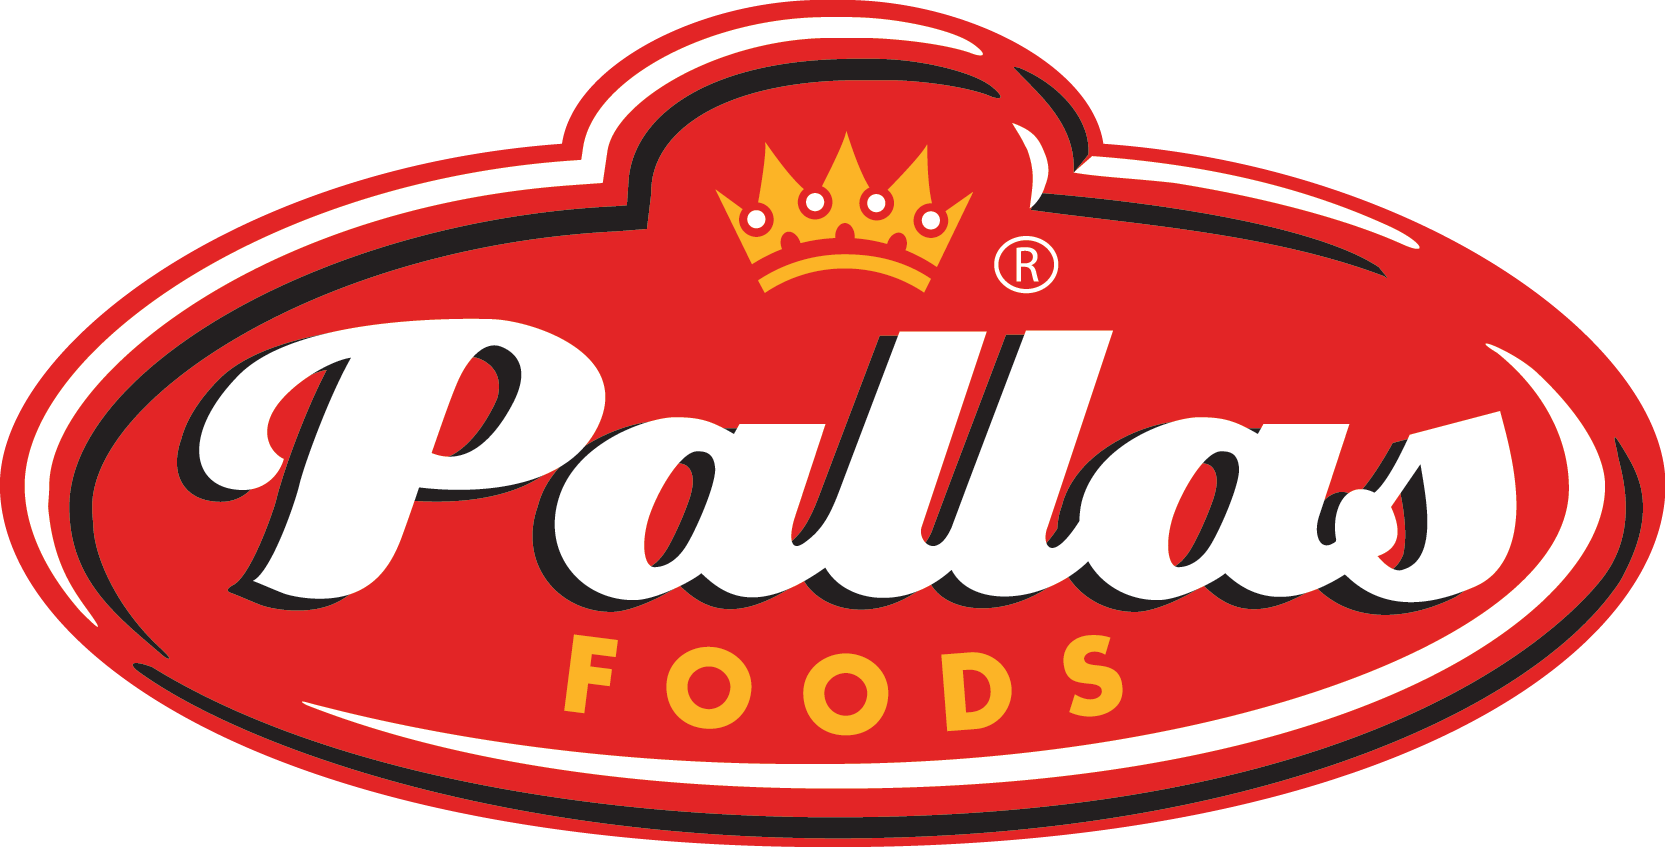 Image of Pallas Foods logotype